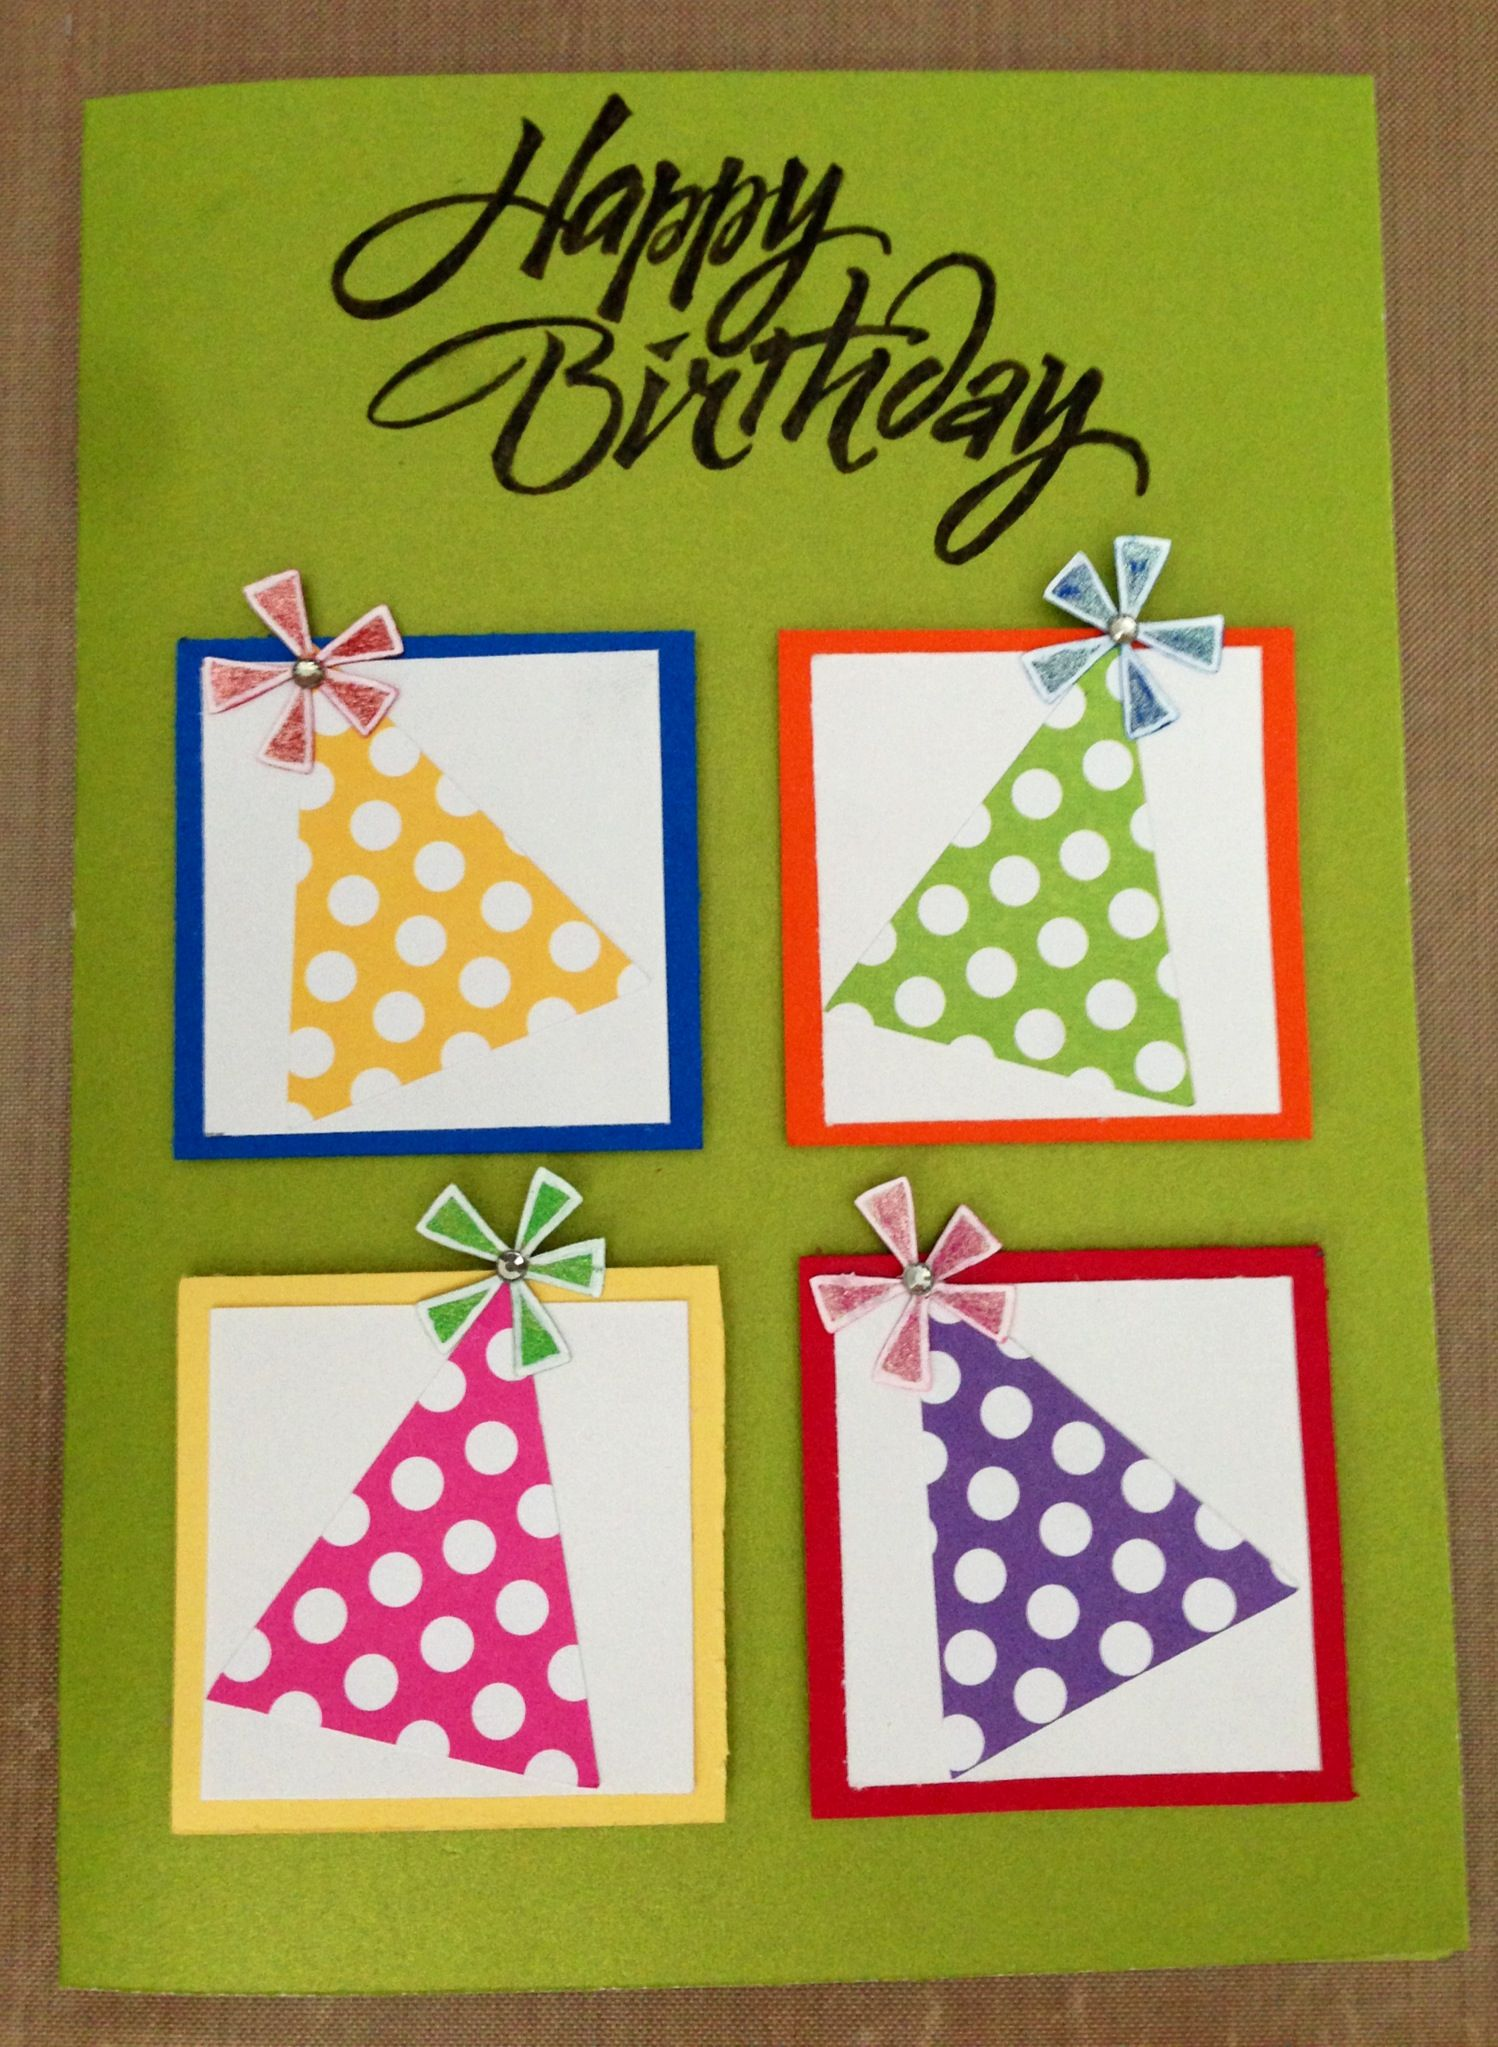 Birthday Card Dosomethingorg Easy CardsCard Ideas BirthdayHappy BirthdayCreative